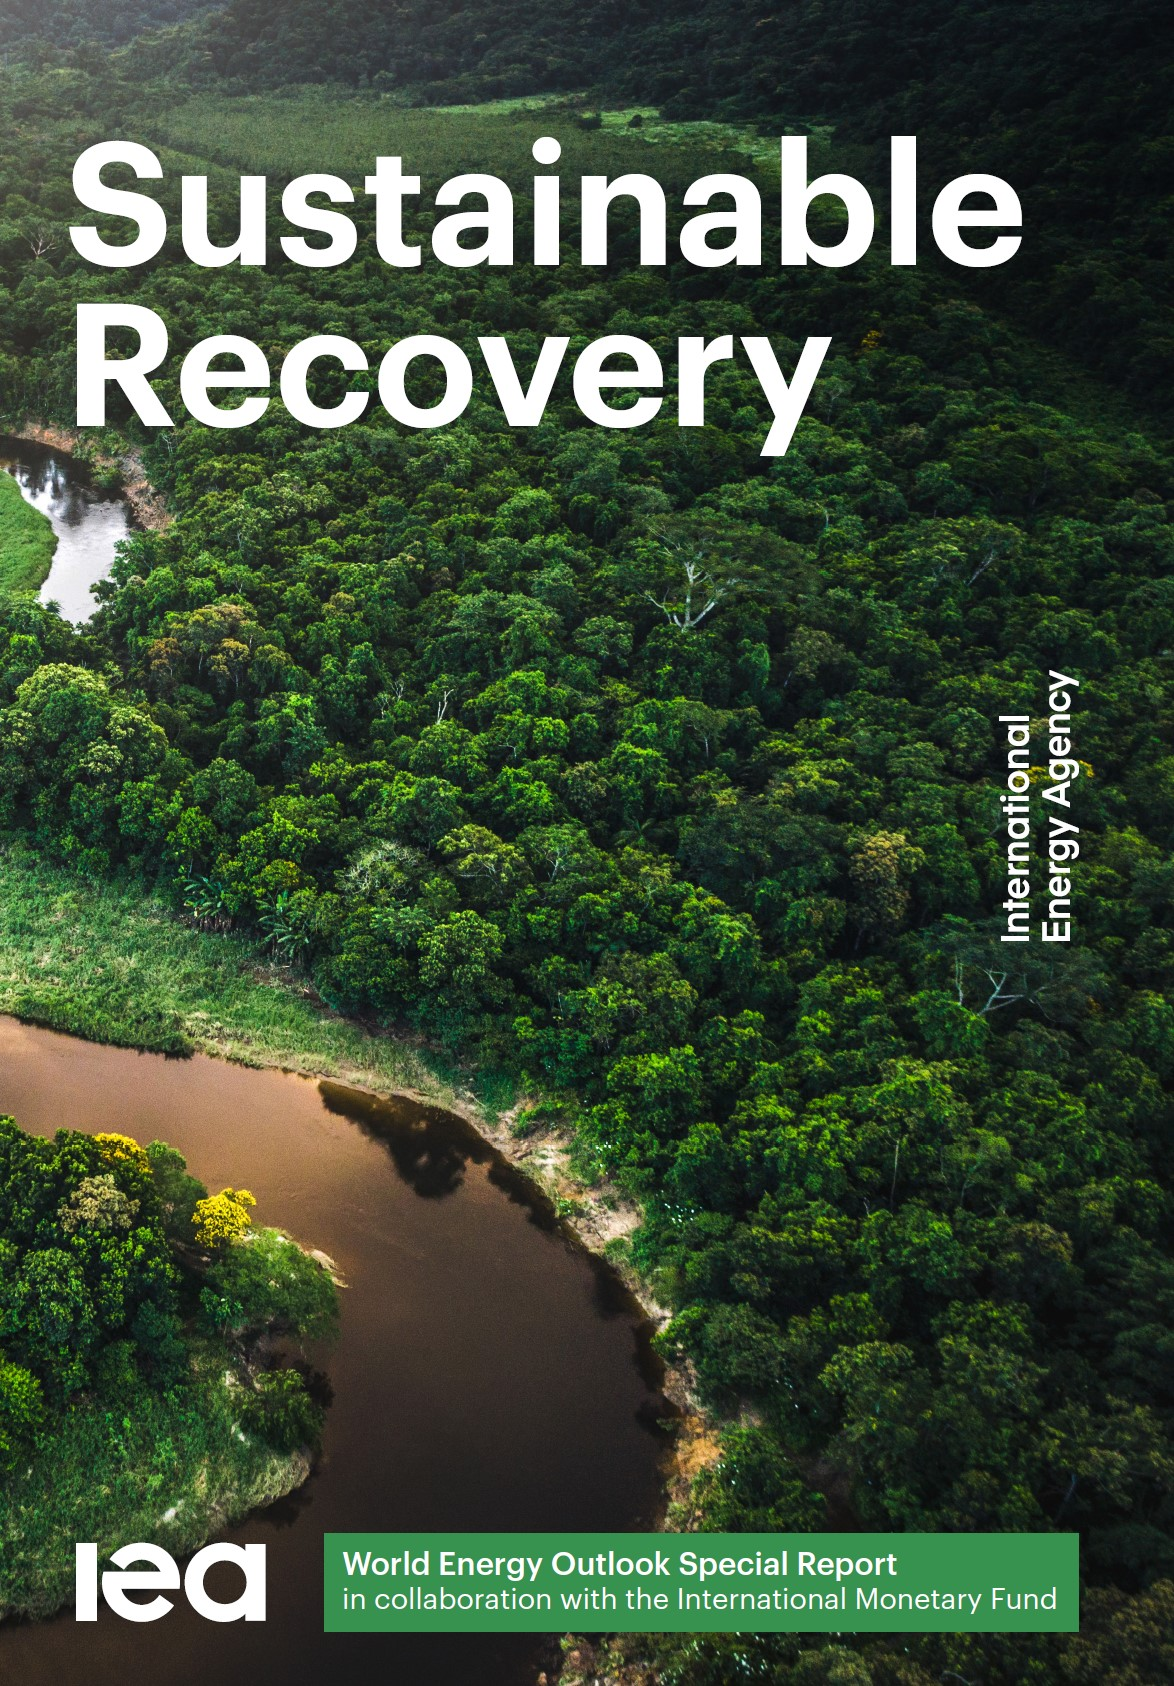 The International Energy Agency's Report 'Sustainable Recovery' sets out an investment programme for the energy sector